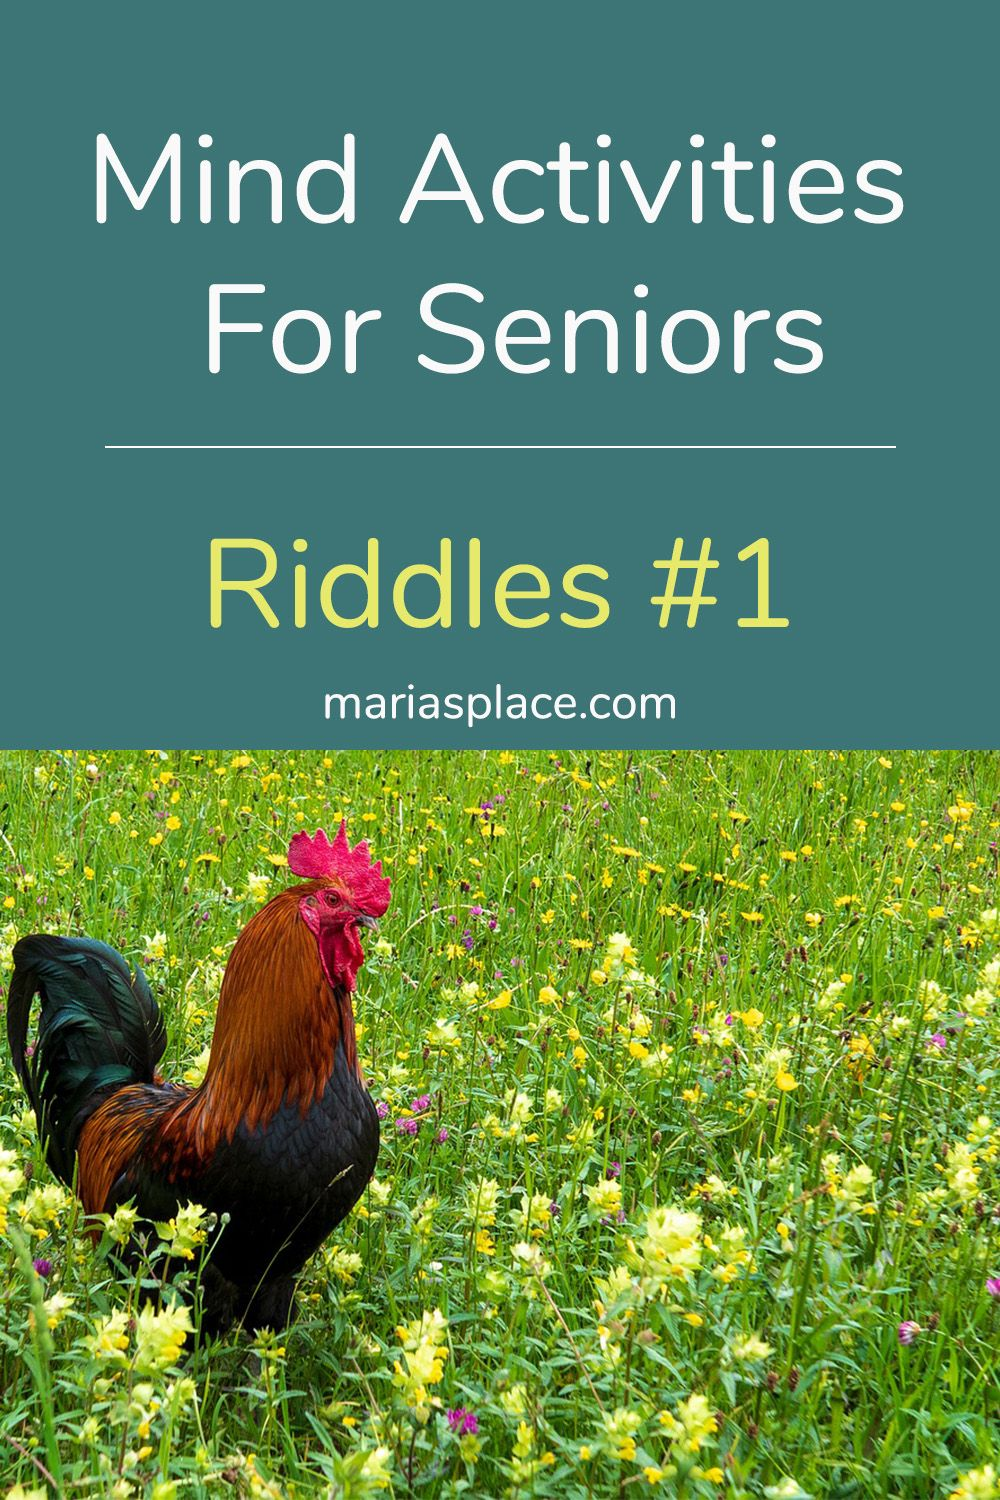 Riddles 1 in 2020 (With images) Senior activities